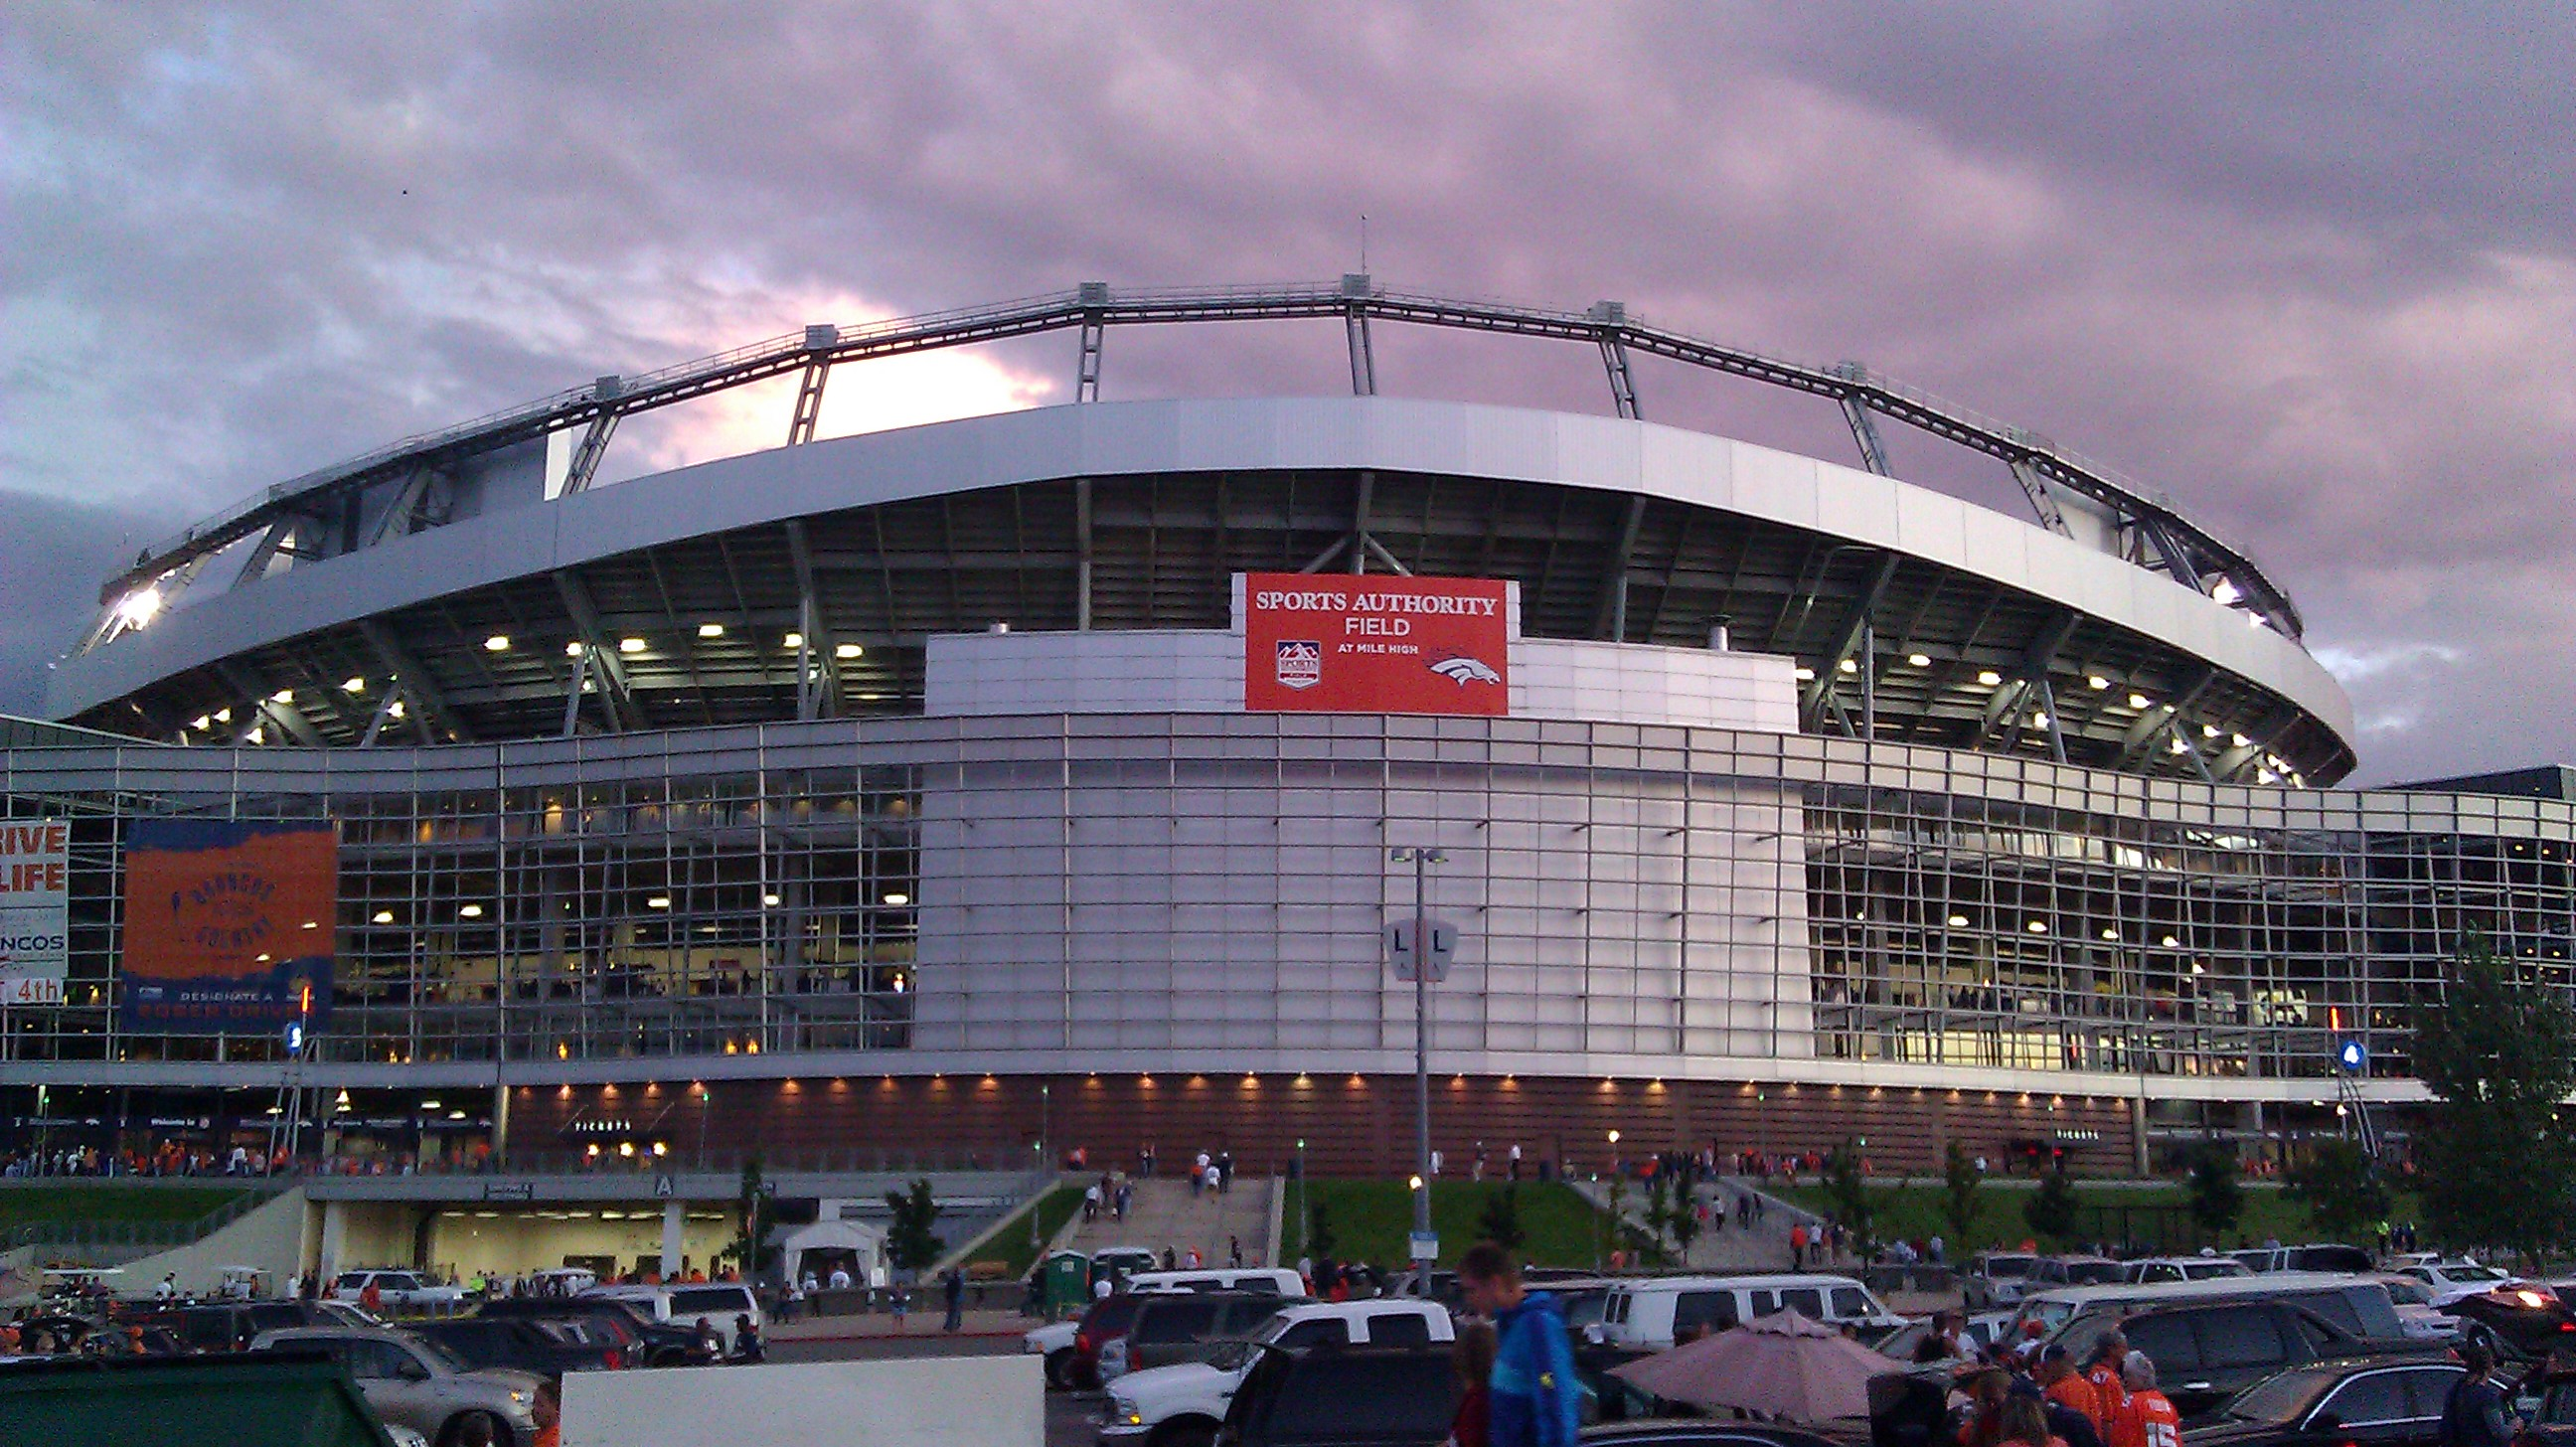 Sports authority field at night